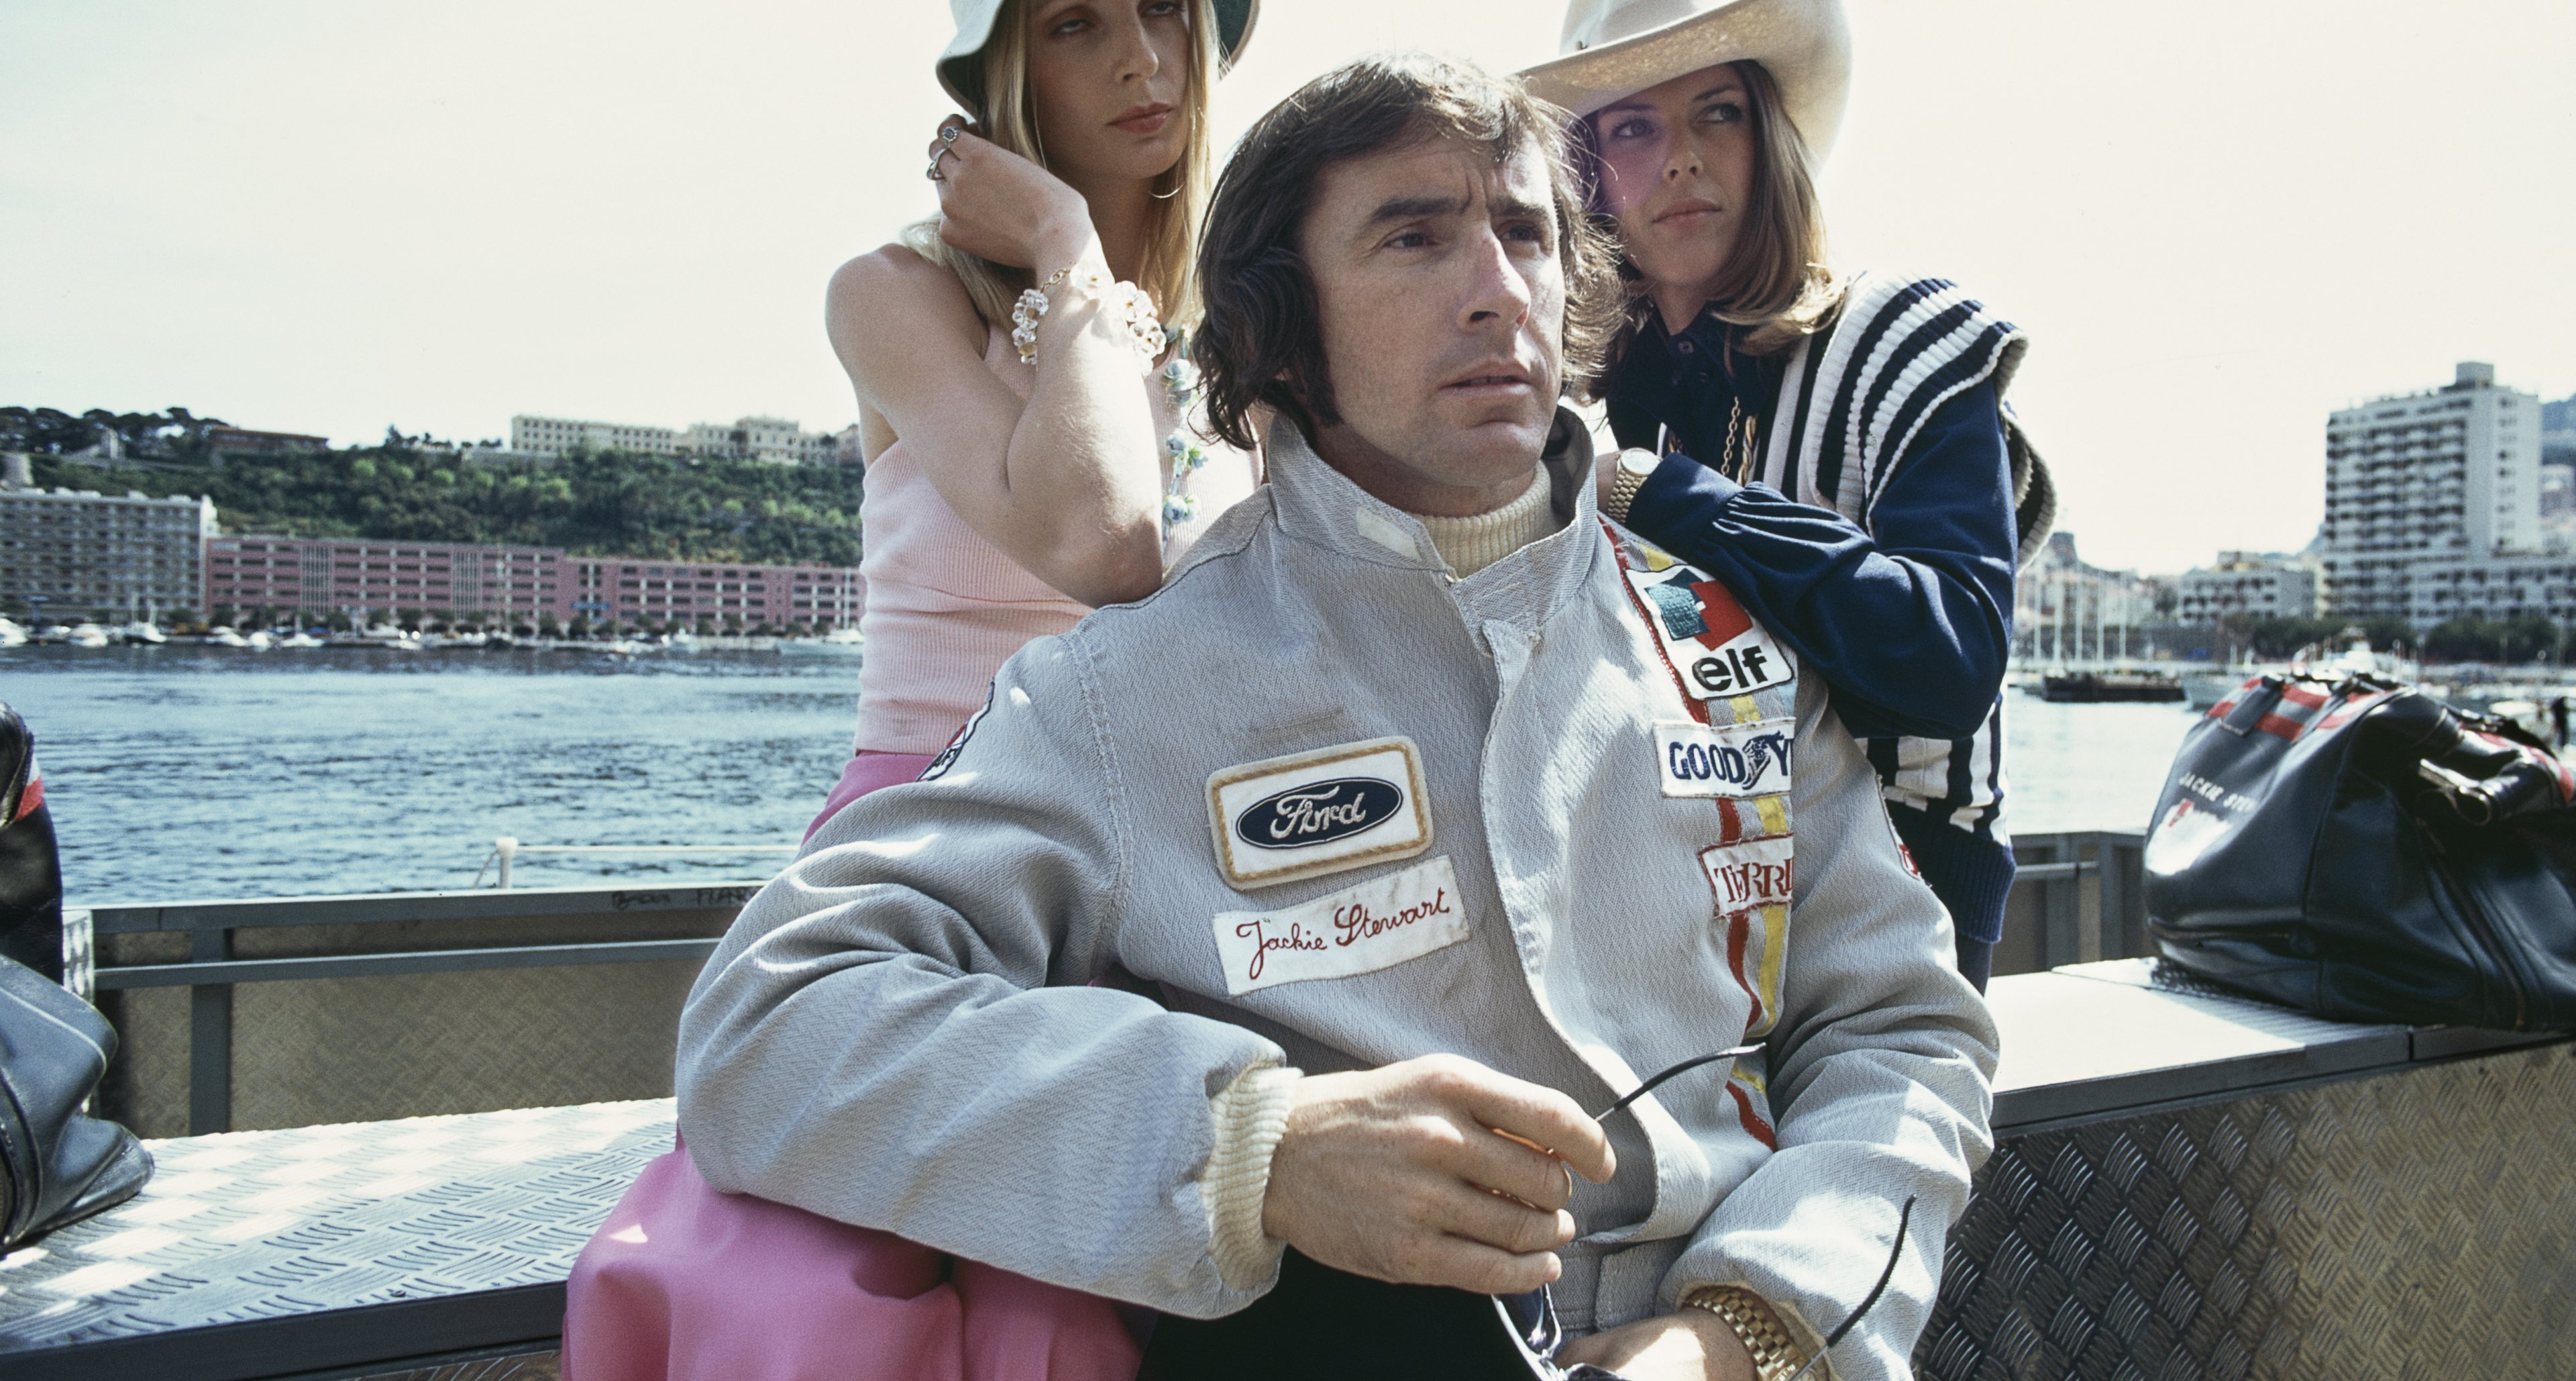 Jackie Stewart, driver of the #1 Elf Team Tyrrell Tyrrell 004 Ford Cosworth DFV, with his wife Helen before the start of the Grand Prix of Monaco on 14th May 1972.